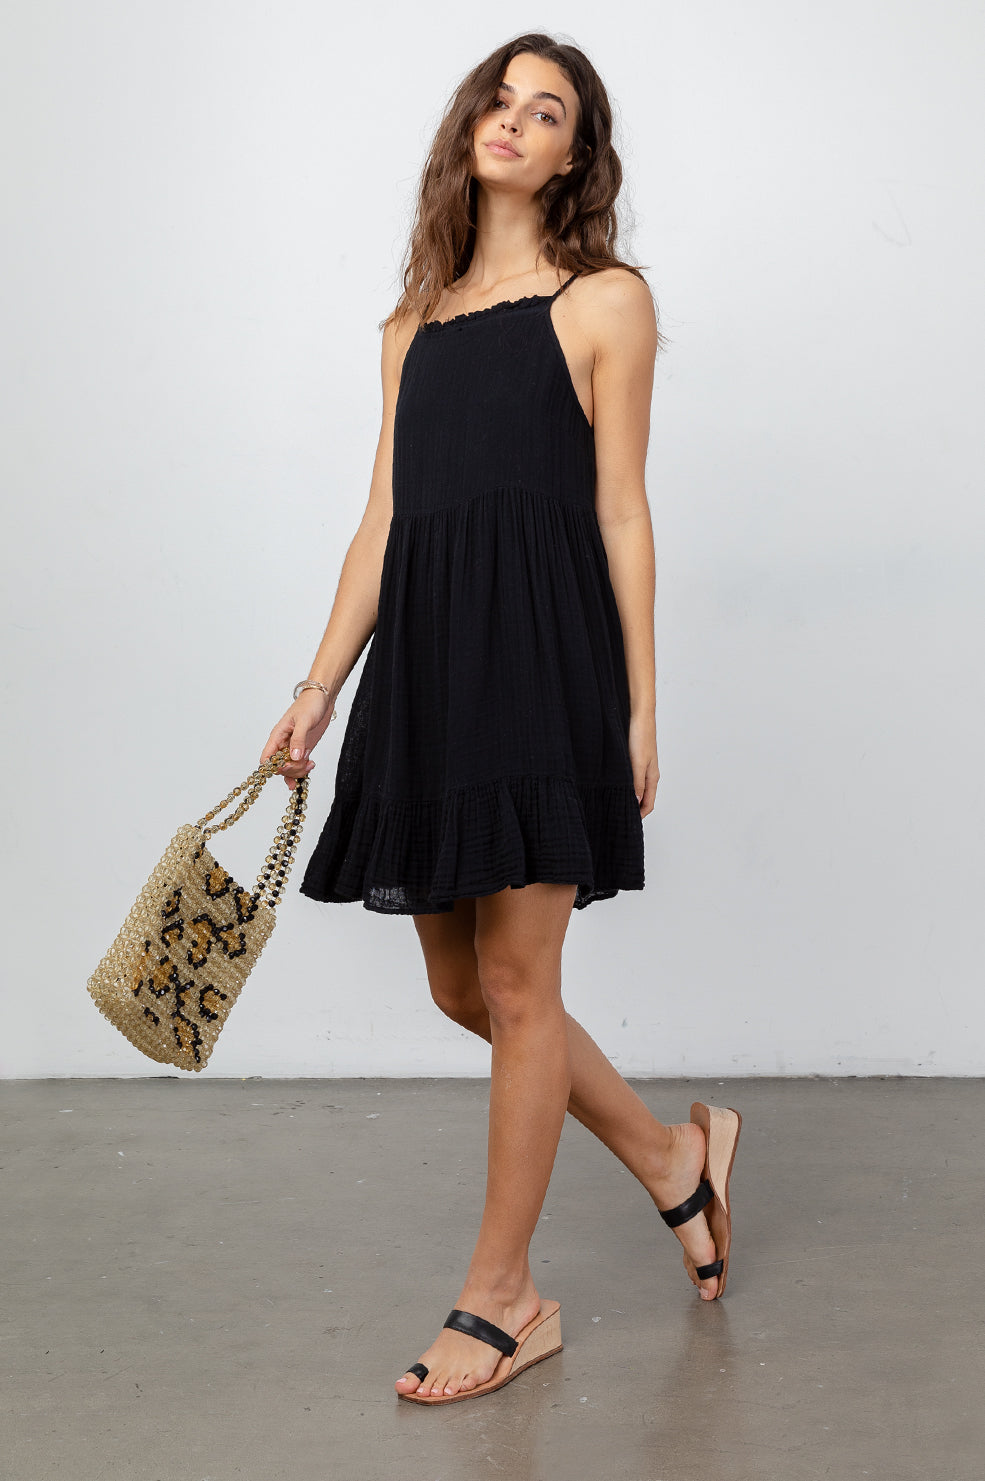 Candace Black. Women's Sleeveless Dress